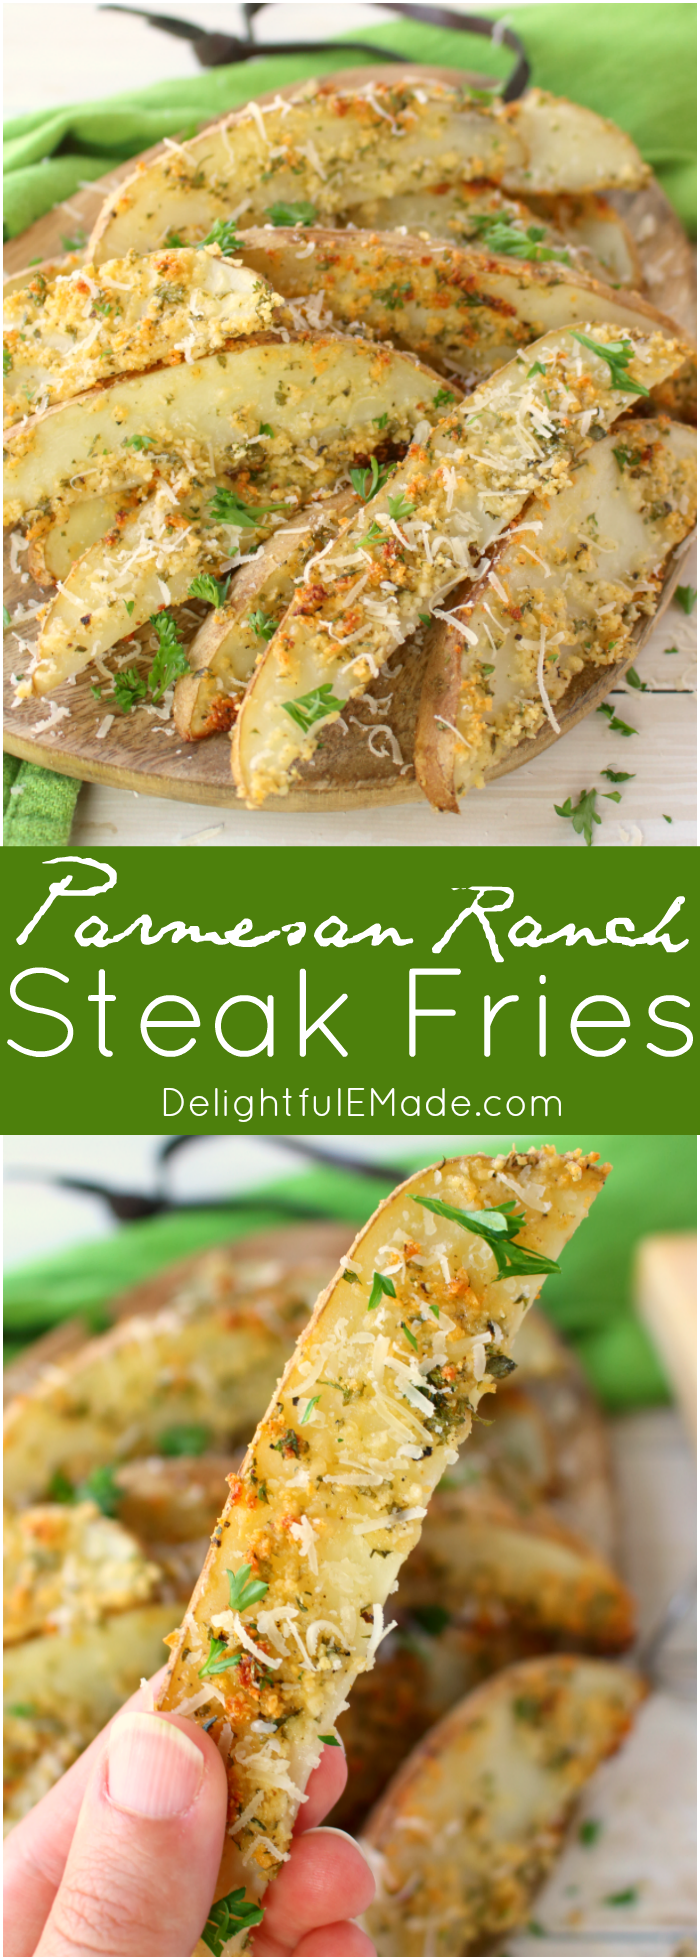 These crispy, oven-baked fries will be a new favorite side with everyone in your family!  Russet potato wedges are coated in Parmesan cheese, ranch seasoning, and a bit of parsley, they come together in moments, and bake to perfection!  Fantastic with anything from sloppy joes to steak and everything in between!